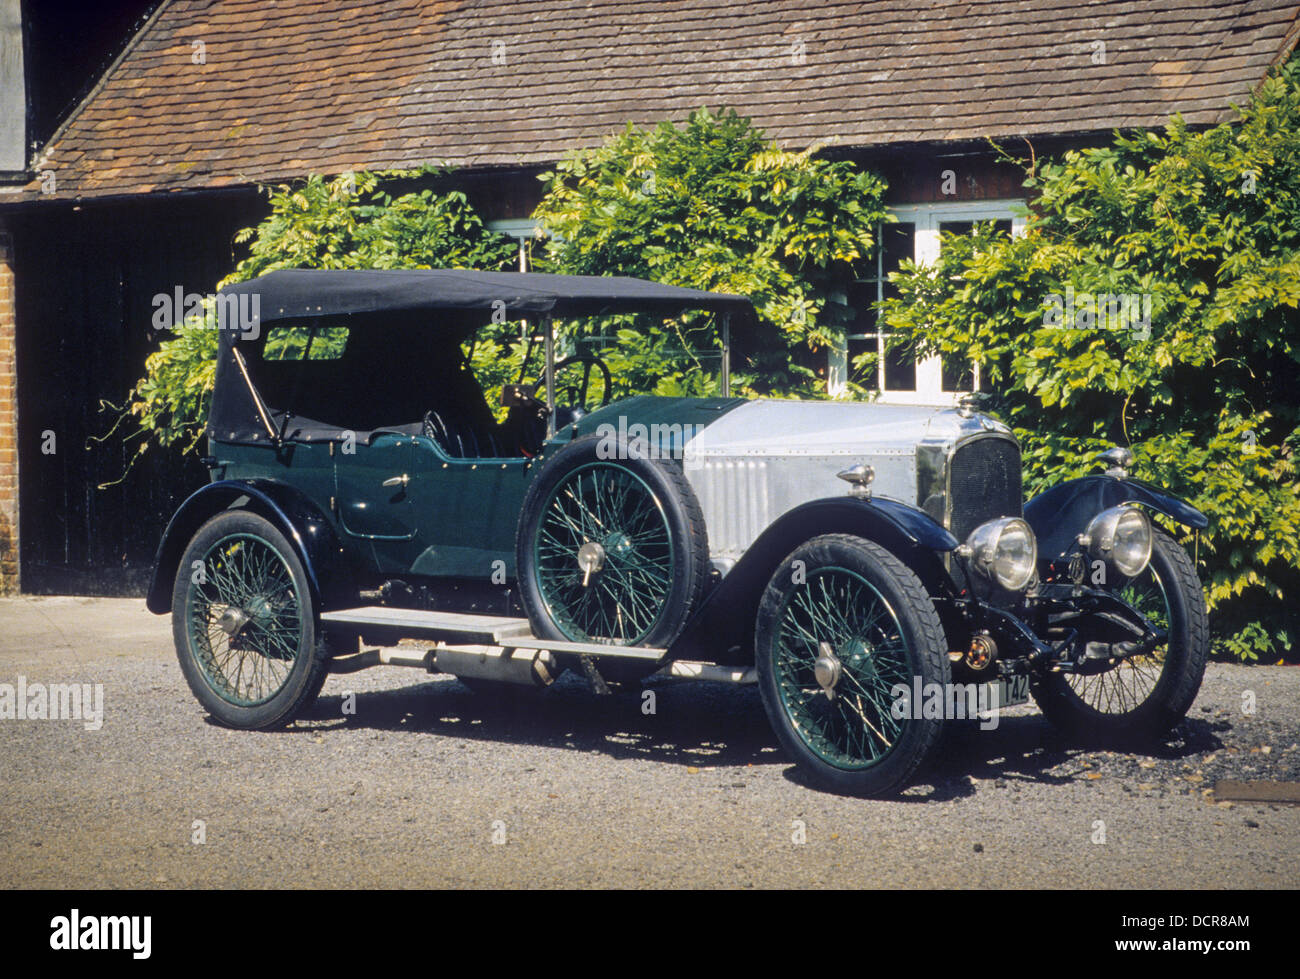 1920 VAUXHALL 30/98. Photo Nicky Wright - Stock Image